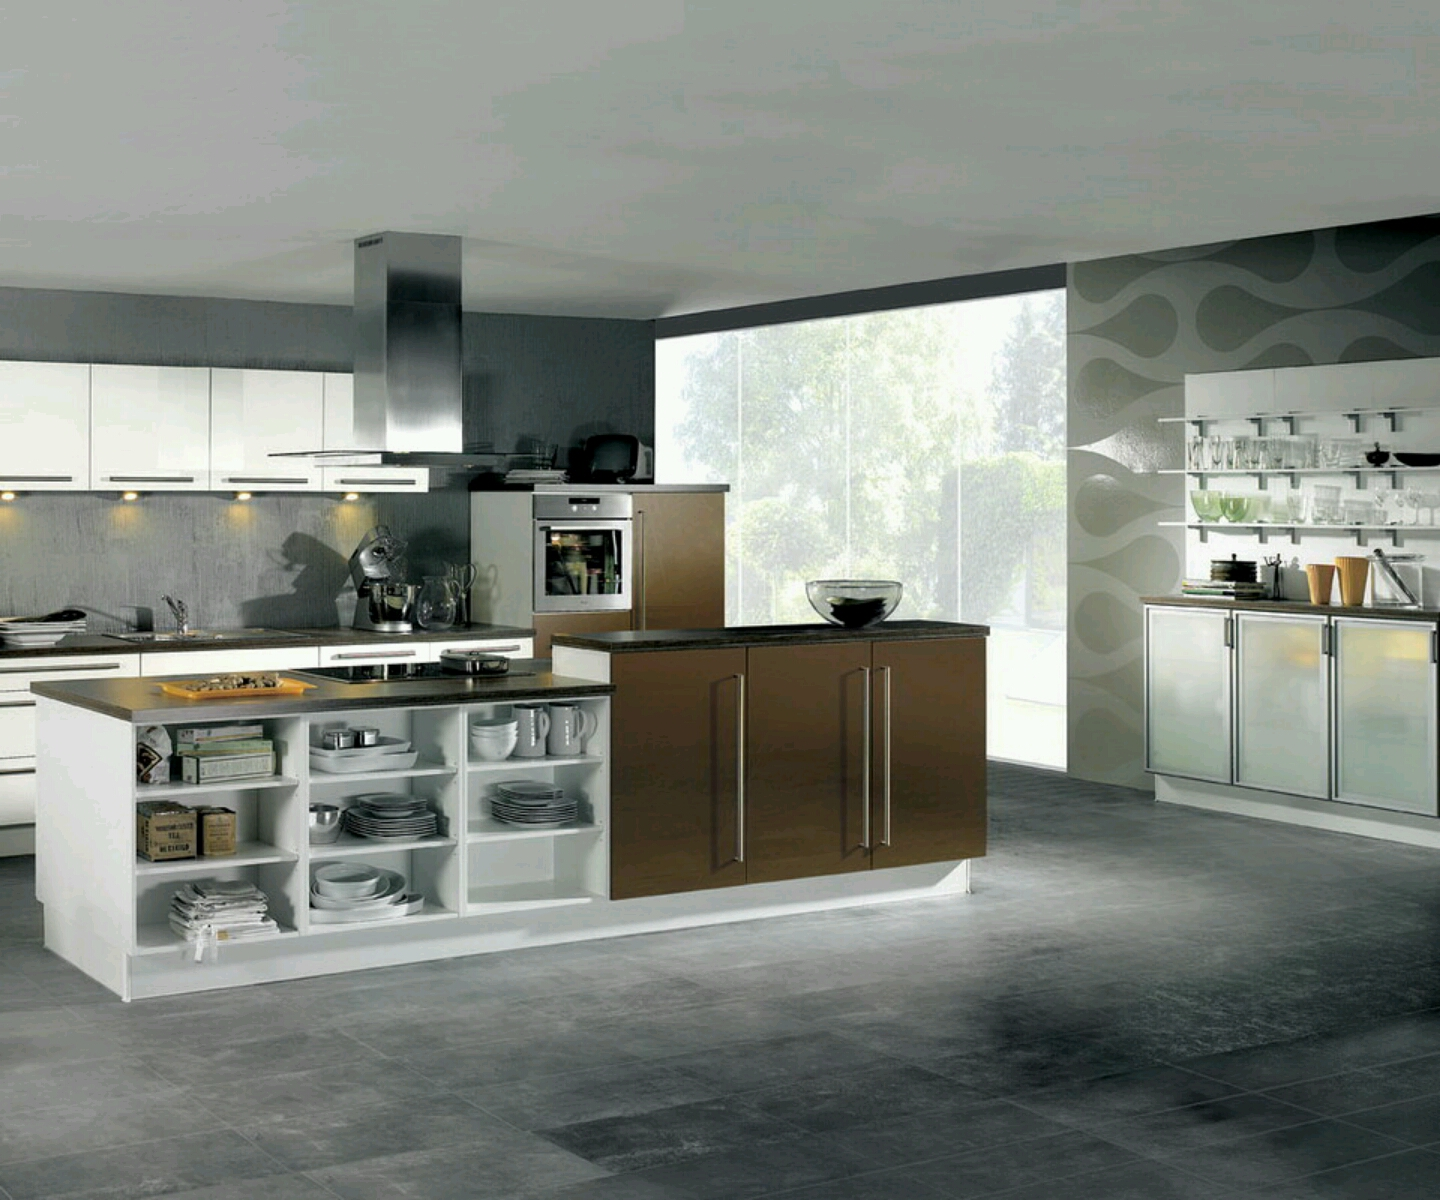 New Home Designs Latest Ultra Modern Kitchen Designs Ideas: New Home Designs Latest.: Ultra Modern Kitchen Designs Ideas